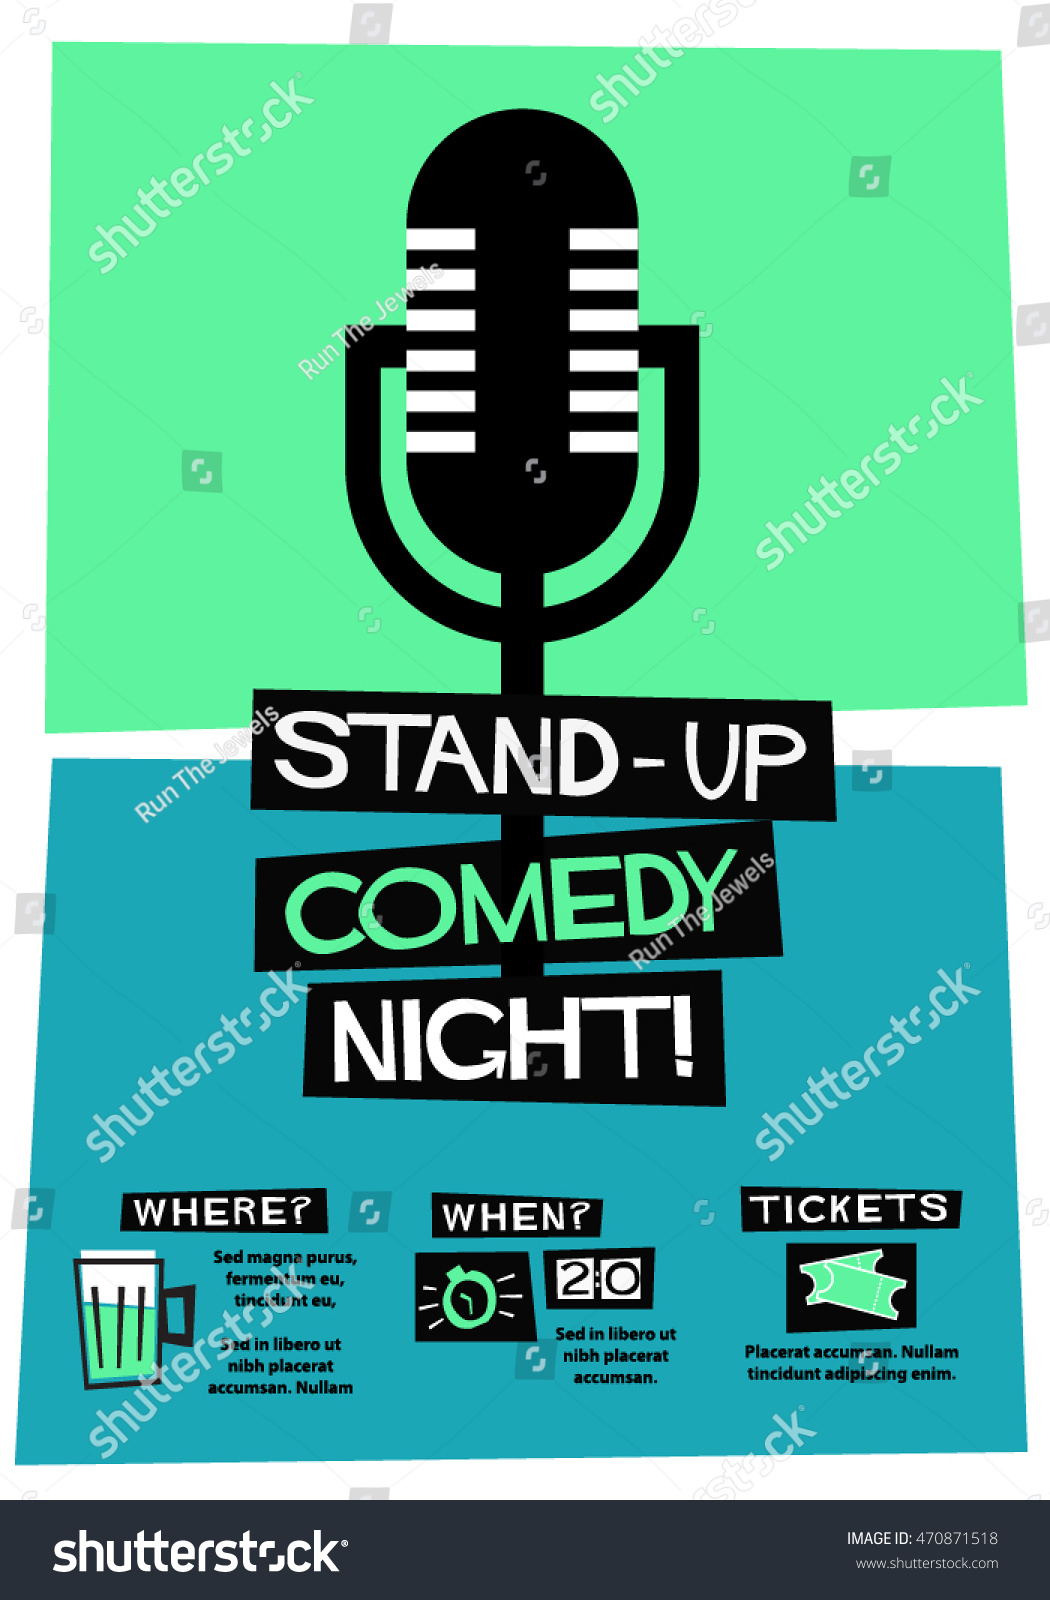 Sungard Exhibition Stand Up Comedy : Stand comedy night flat style vector stock